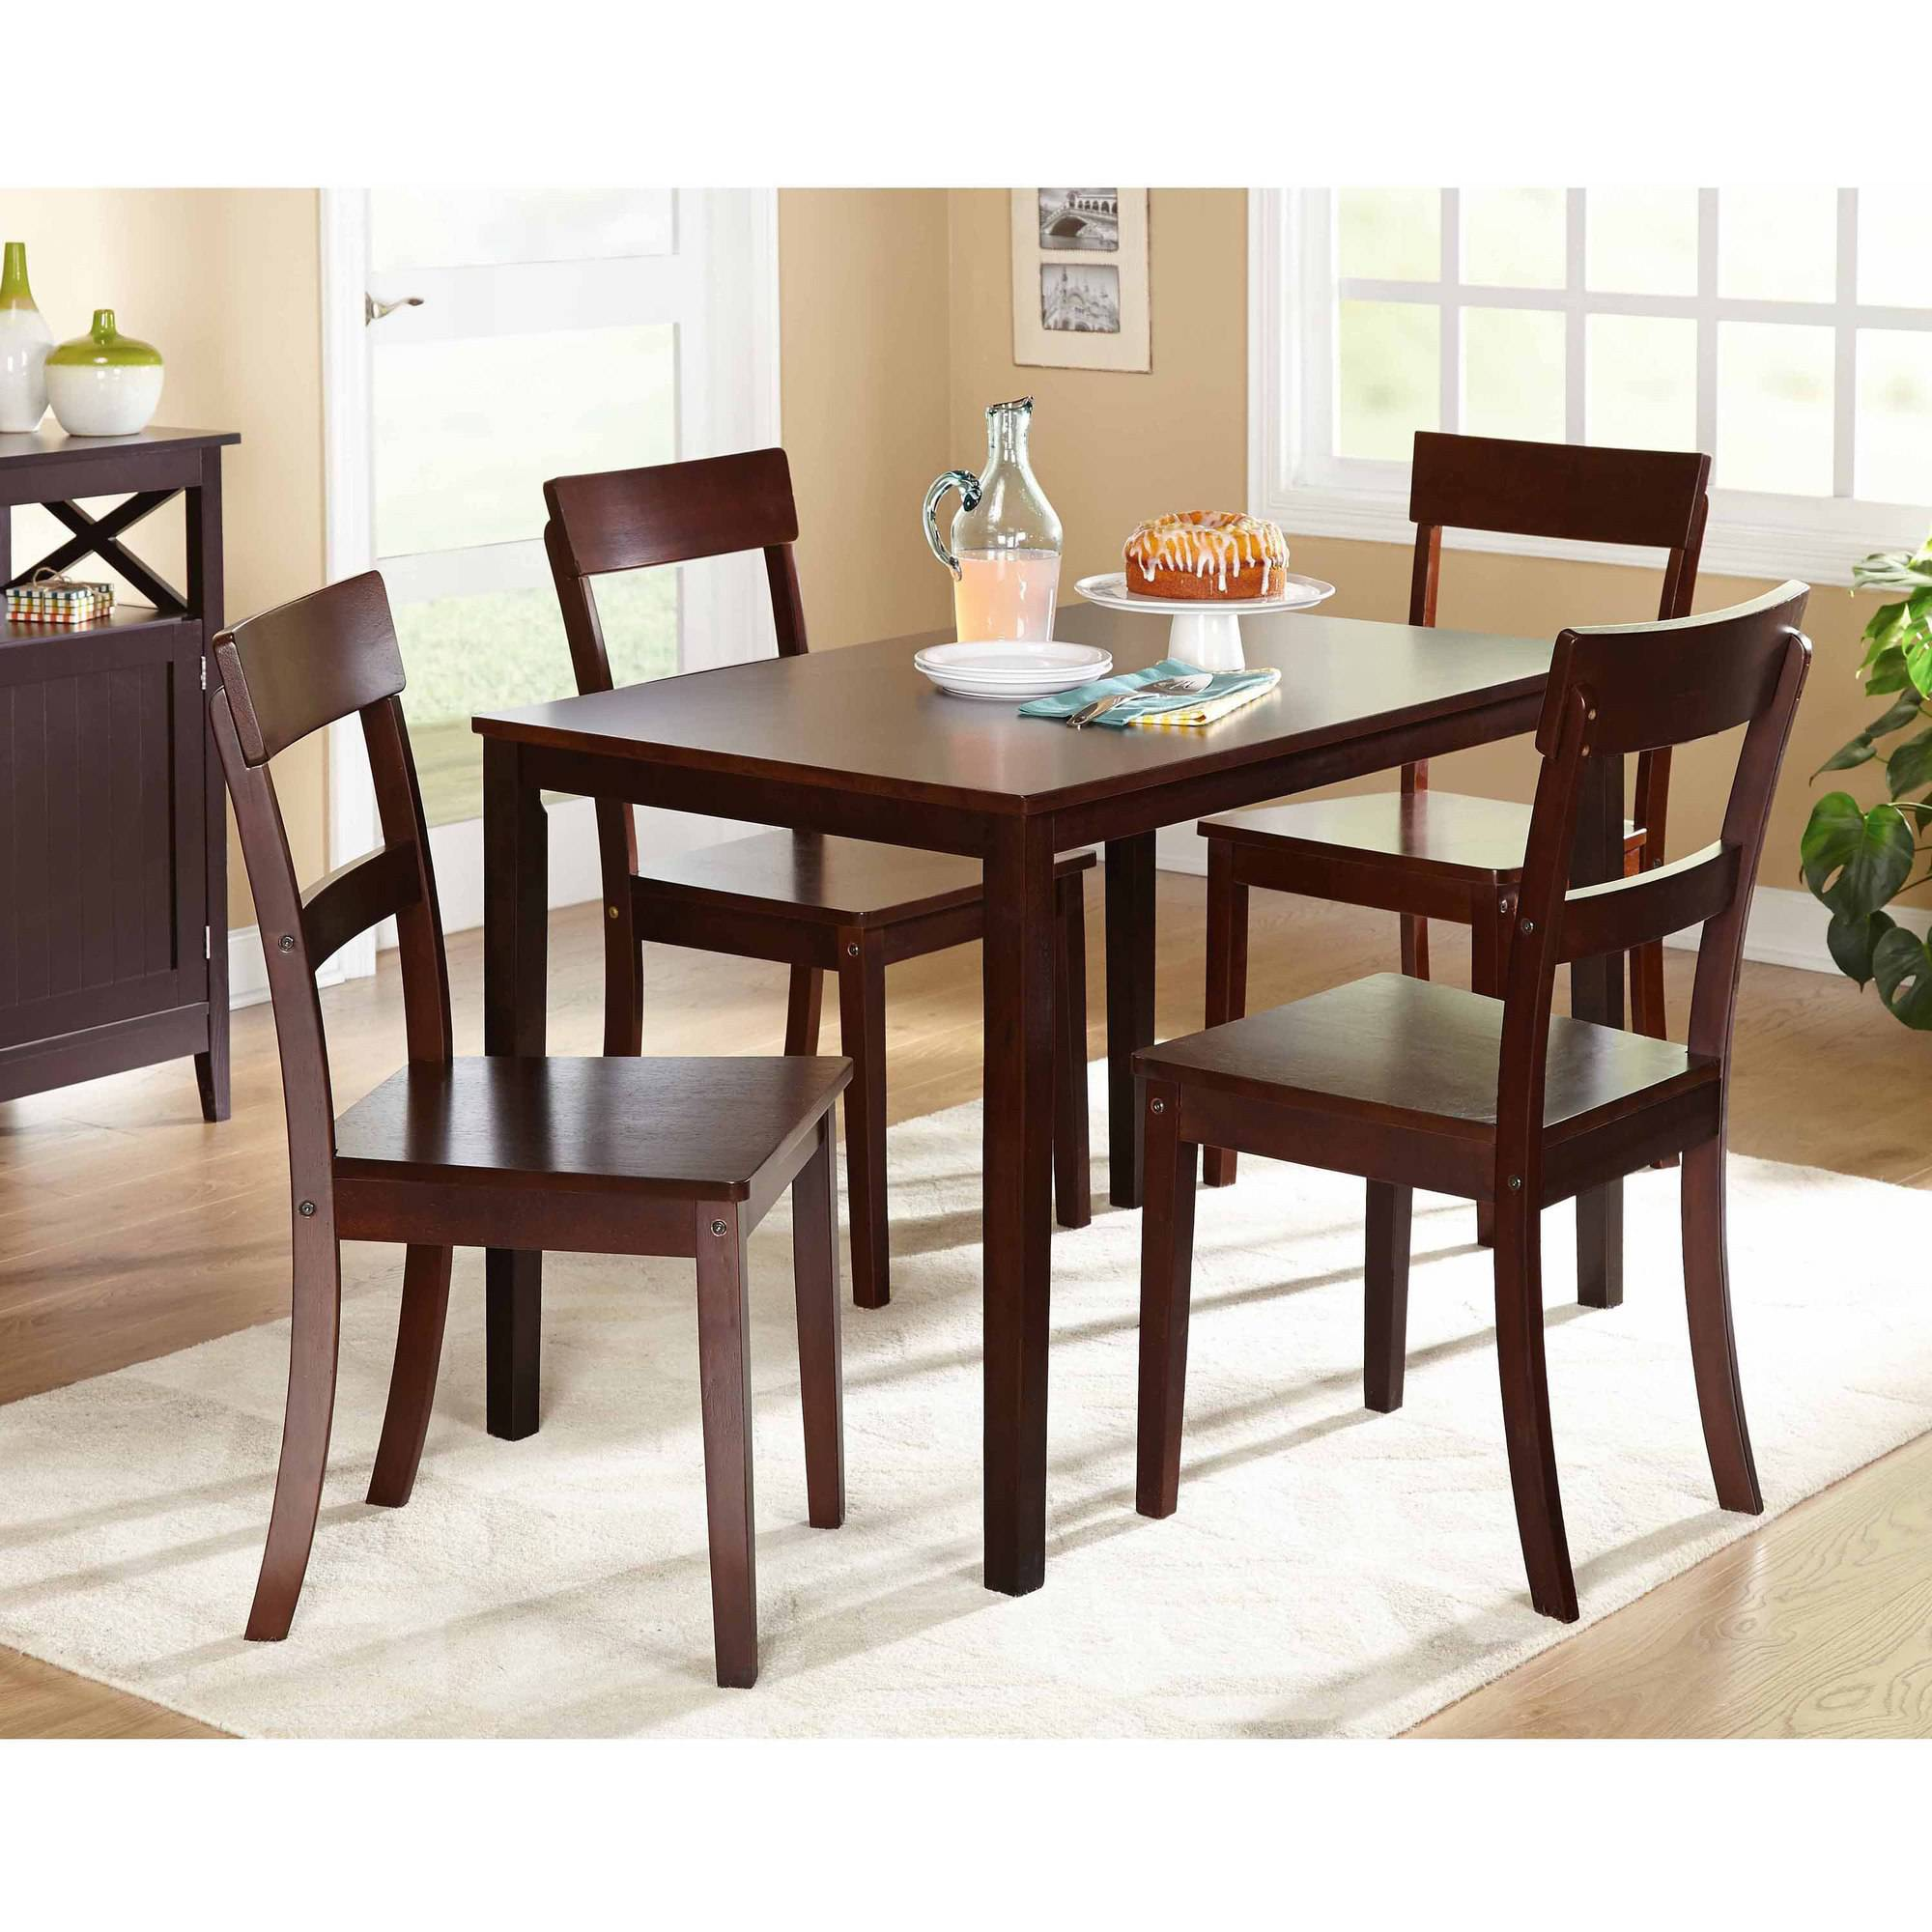 Walmart Dining Table